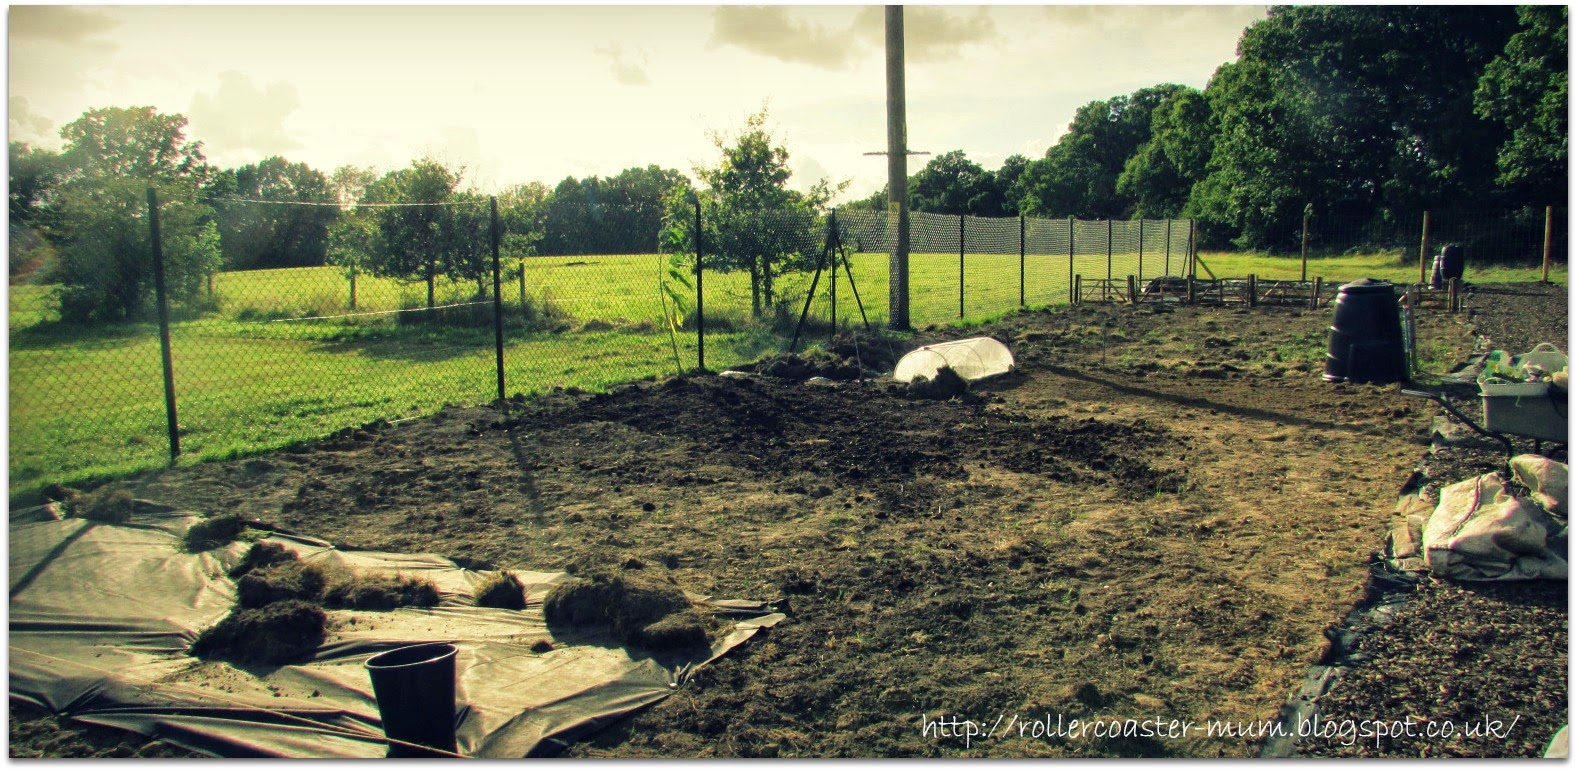 progress on the allotment